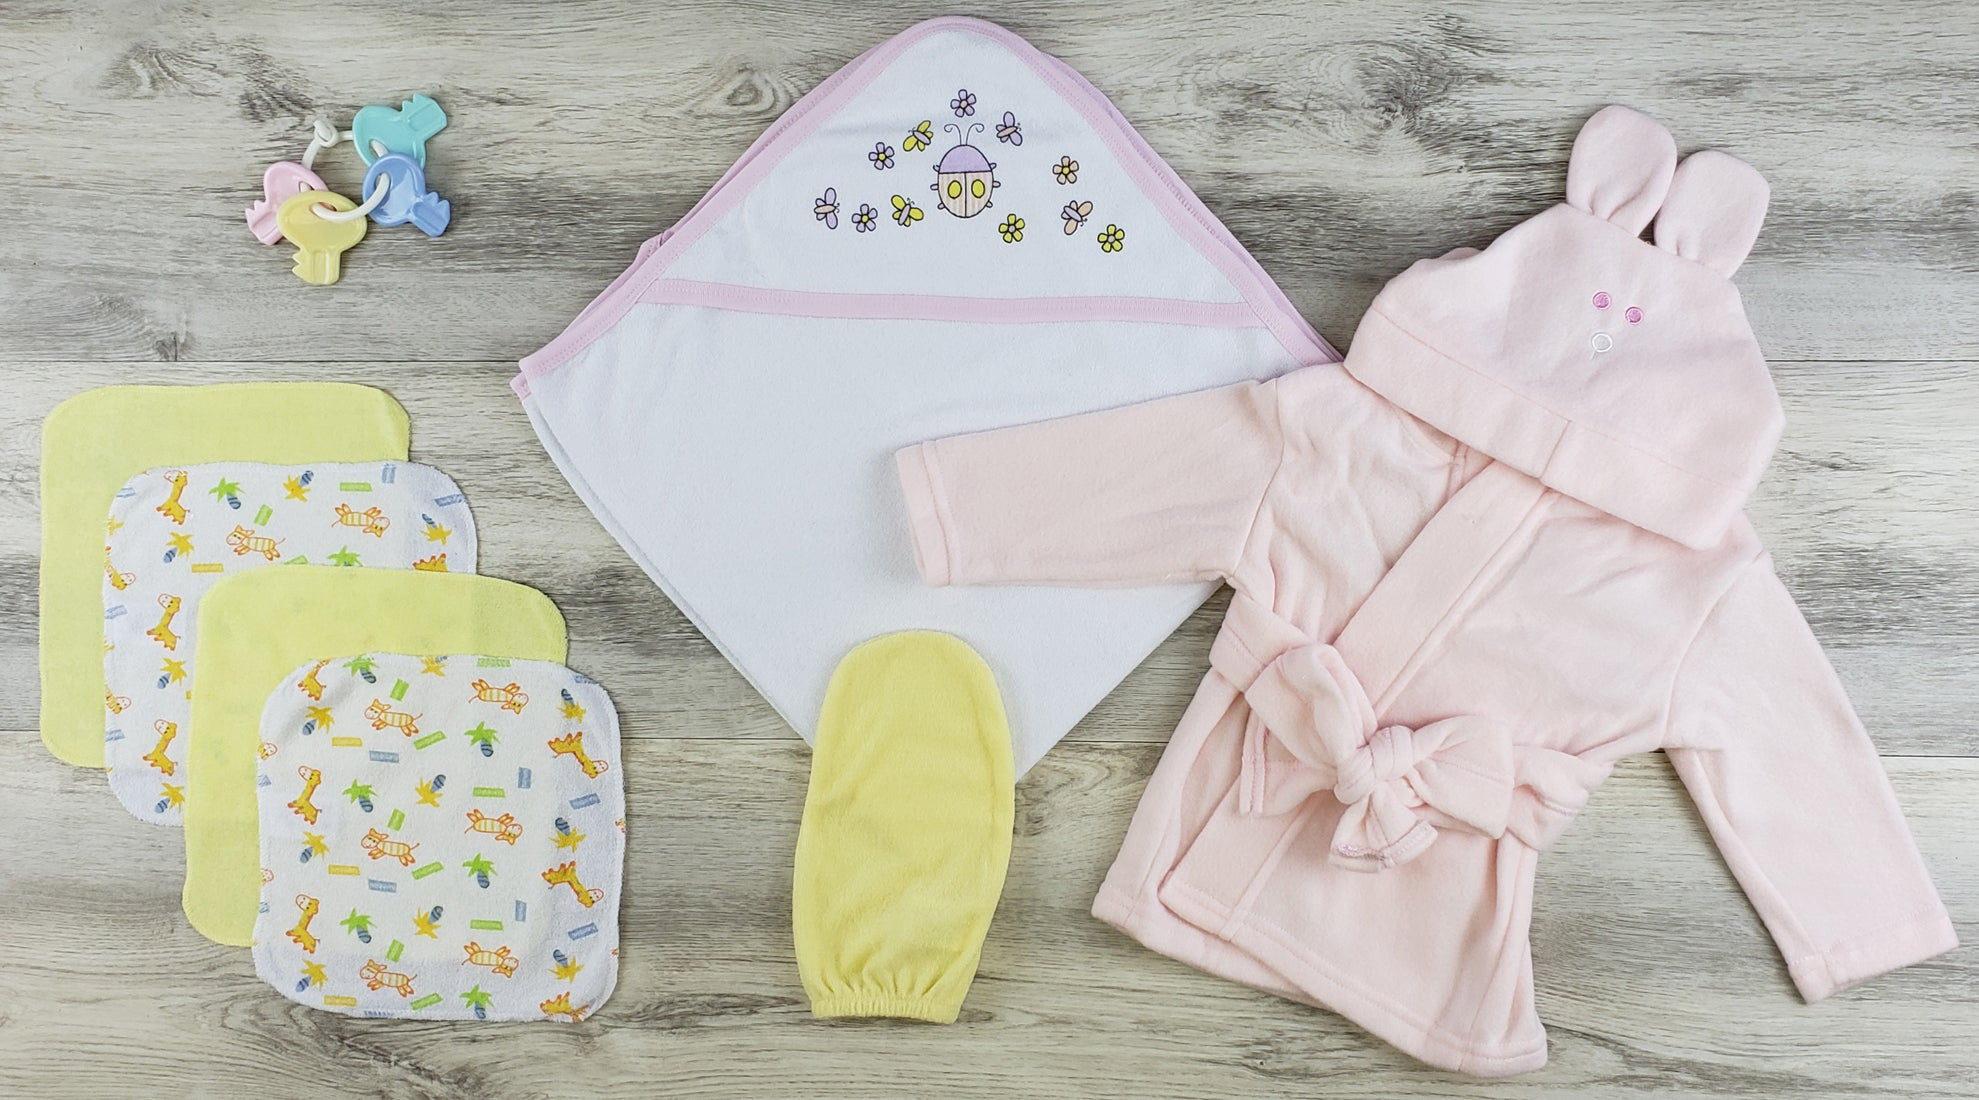 Bambini Hooded Towel, Wash Coths, Bath Mittens and Robe